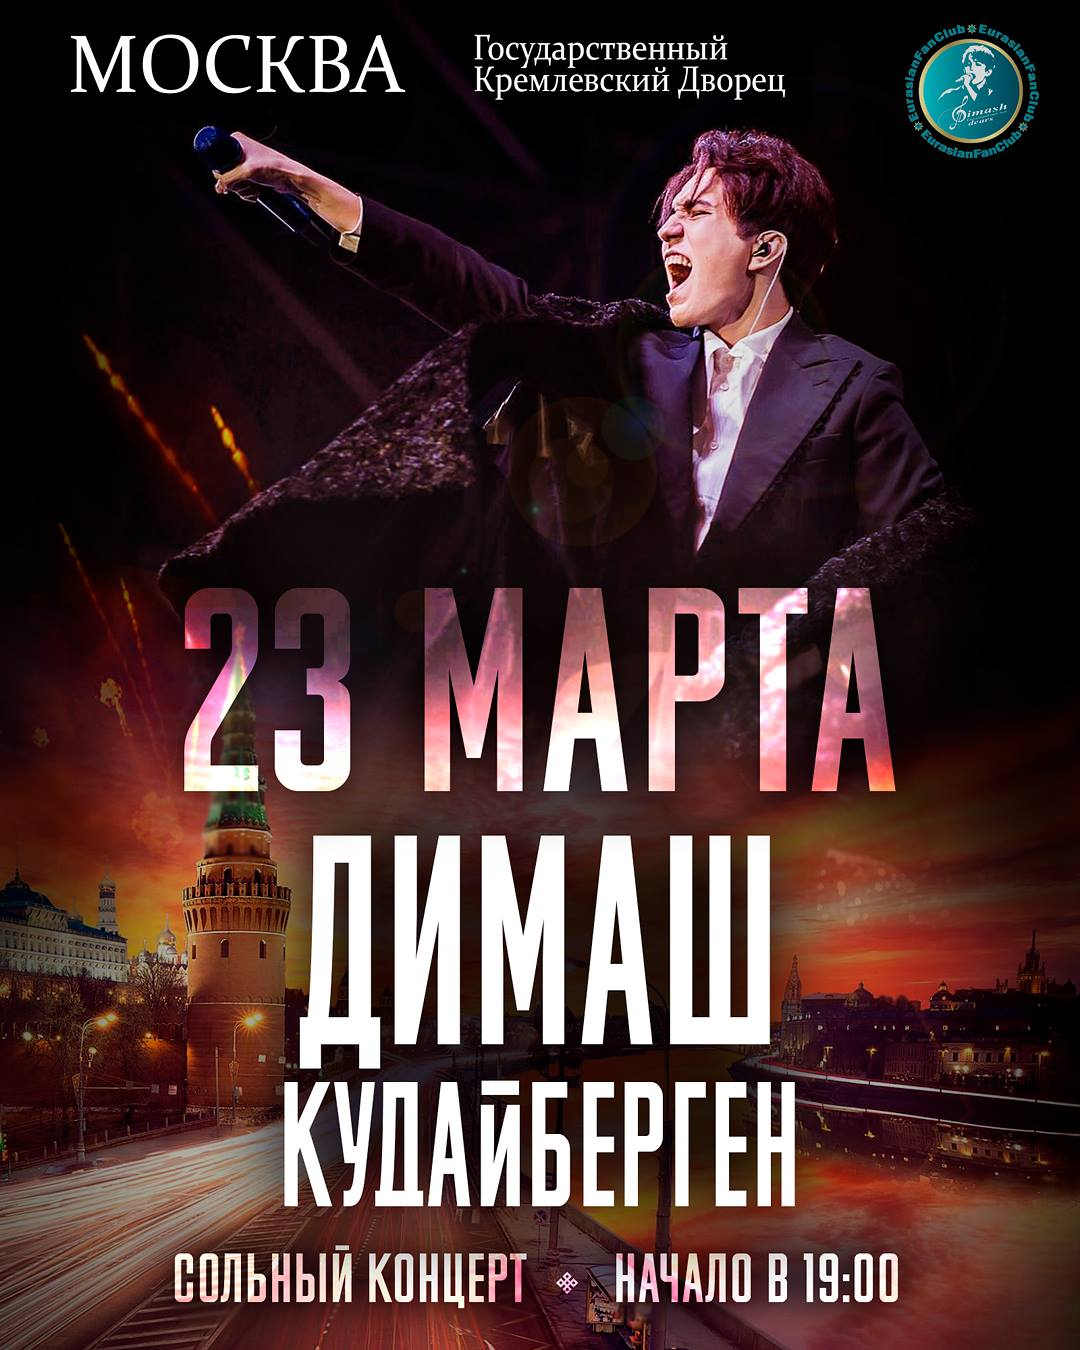 Dimash Kudaibergen Concert Moscow March 22 and 23 2019 | Dimash The